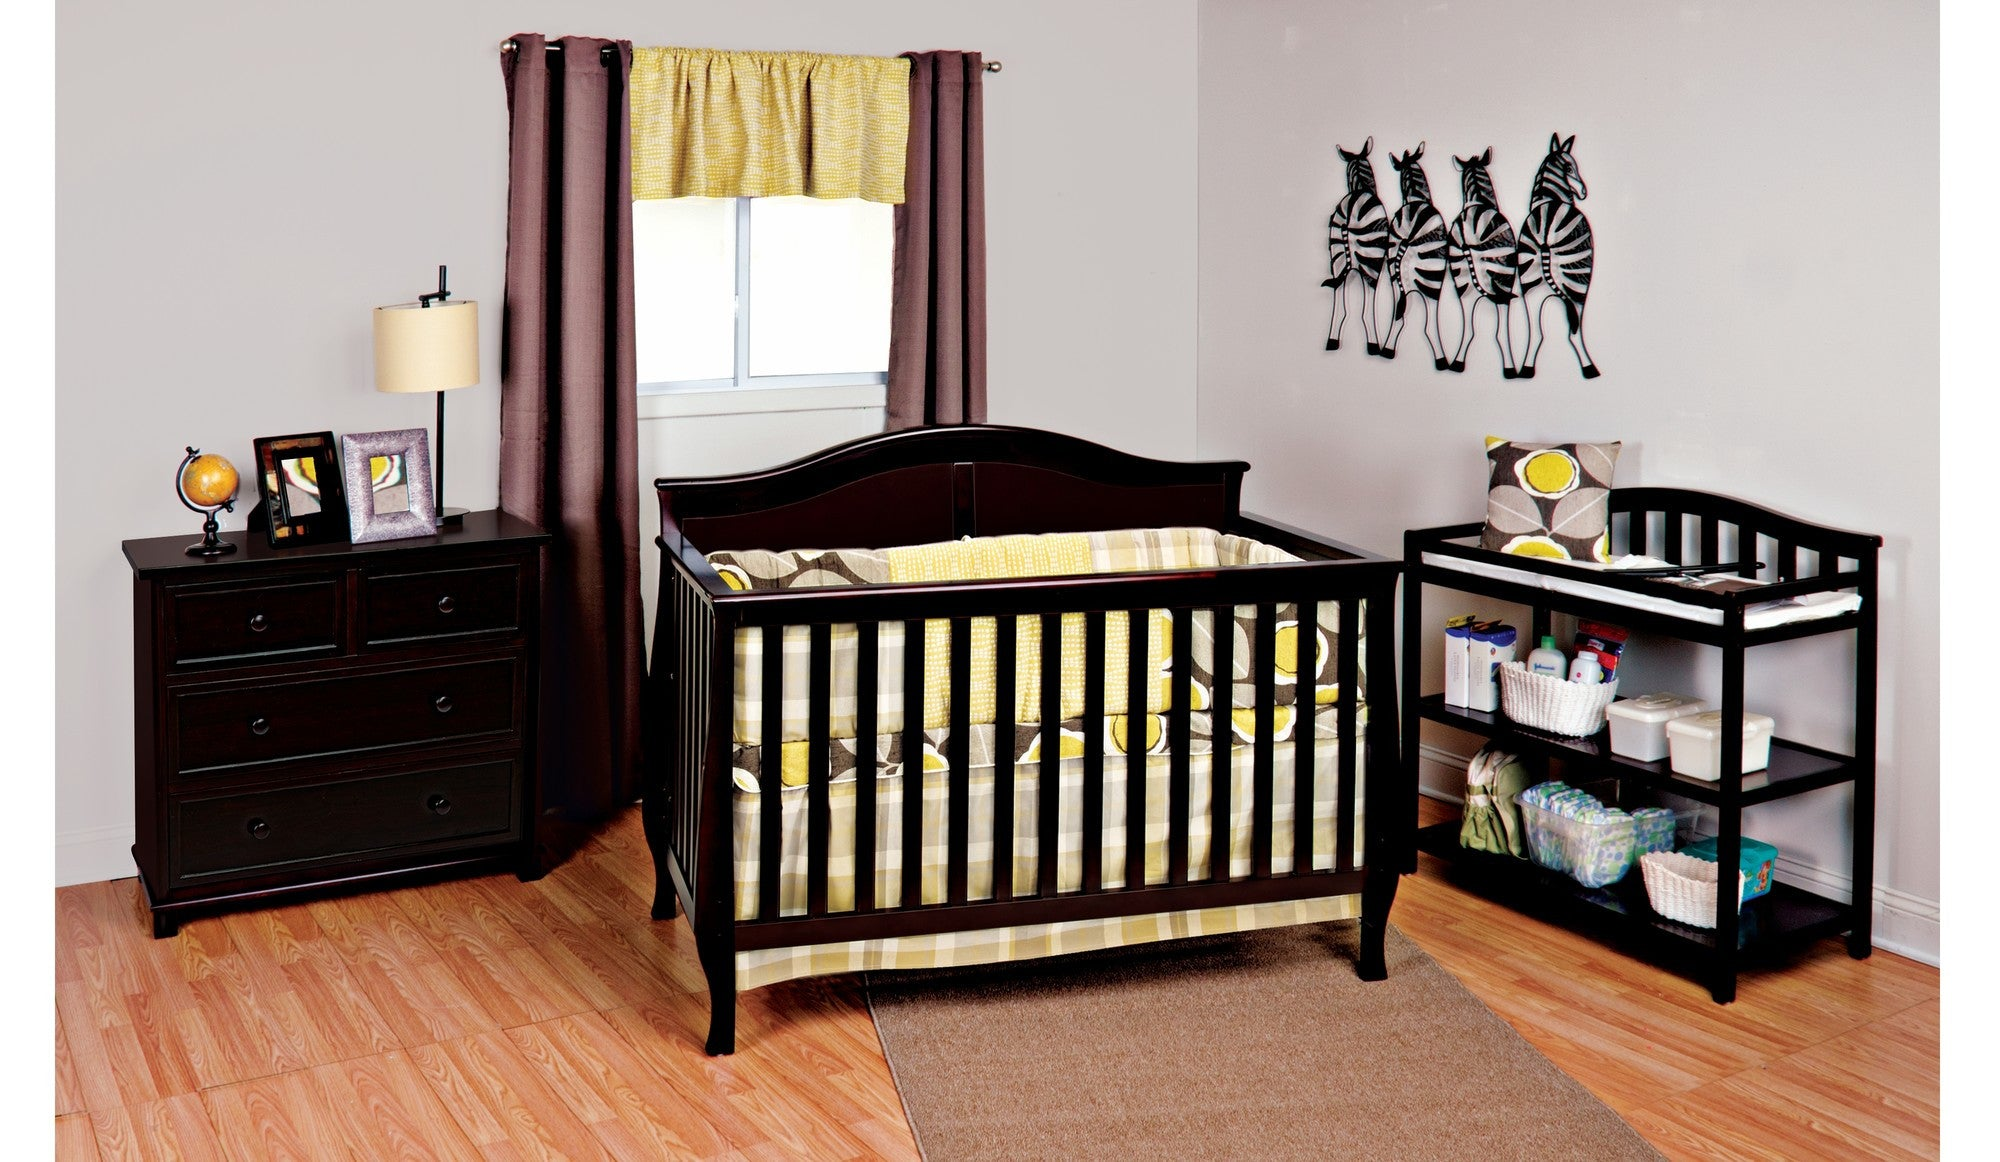 of fosterboyspizza changer with bed plus baby little table rugged convertible multipurpose cheap inspirational ideas a is changing the full crib size and constructed dresser perfect toddler pretty